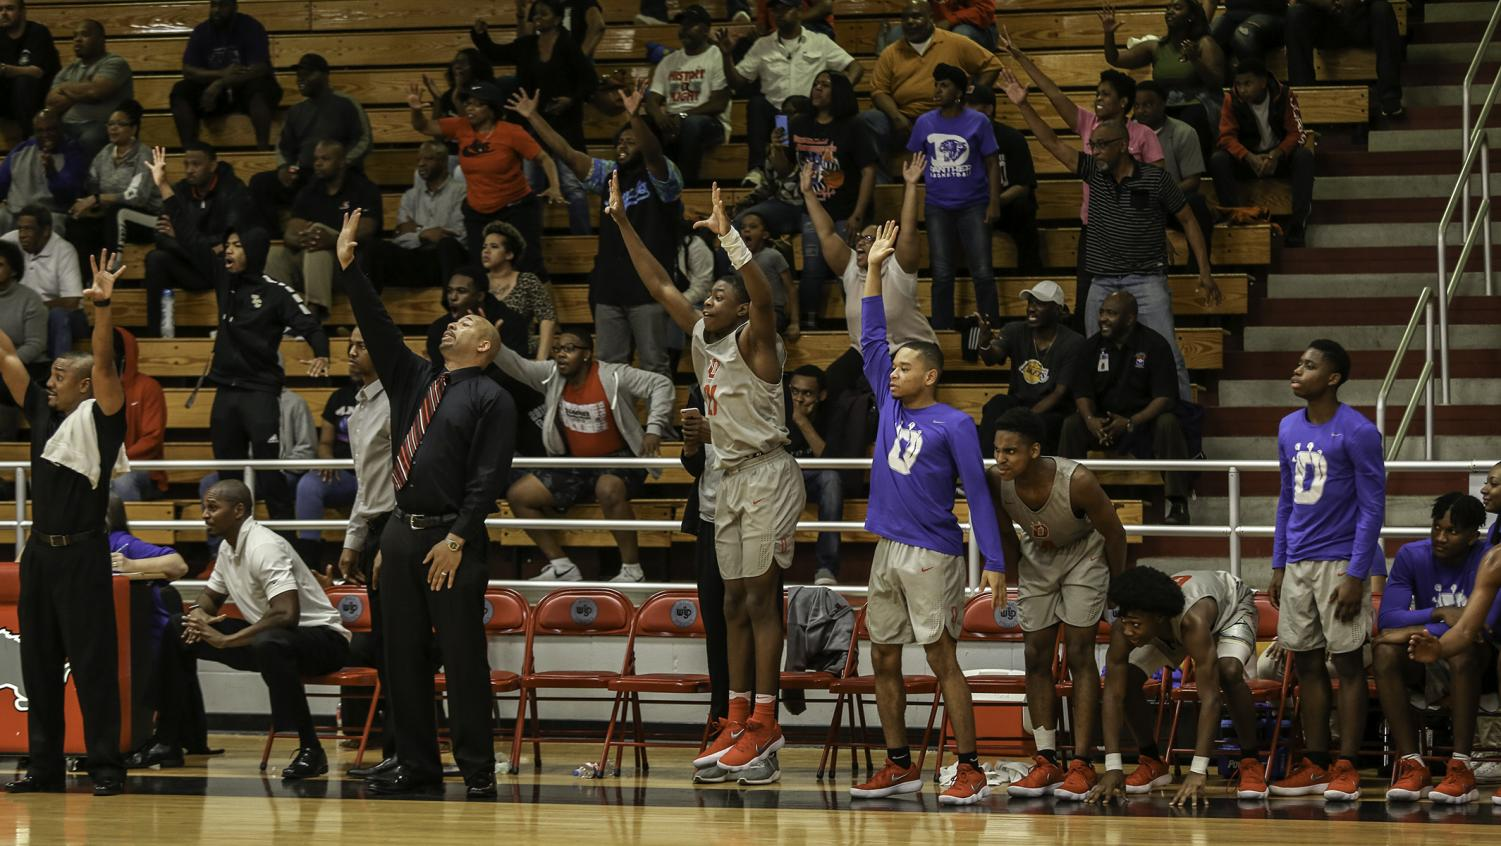 The bench erupts as the Panthers look to put the finishing touches on a tough Killeen Showmaker team in the first round of the State playoffs. (Brenda Arana Photo)